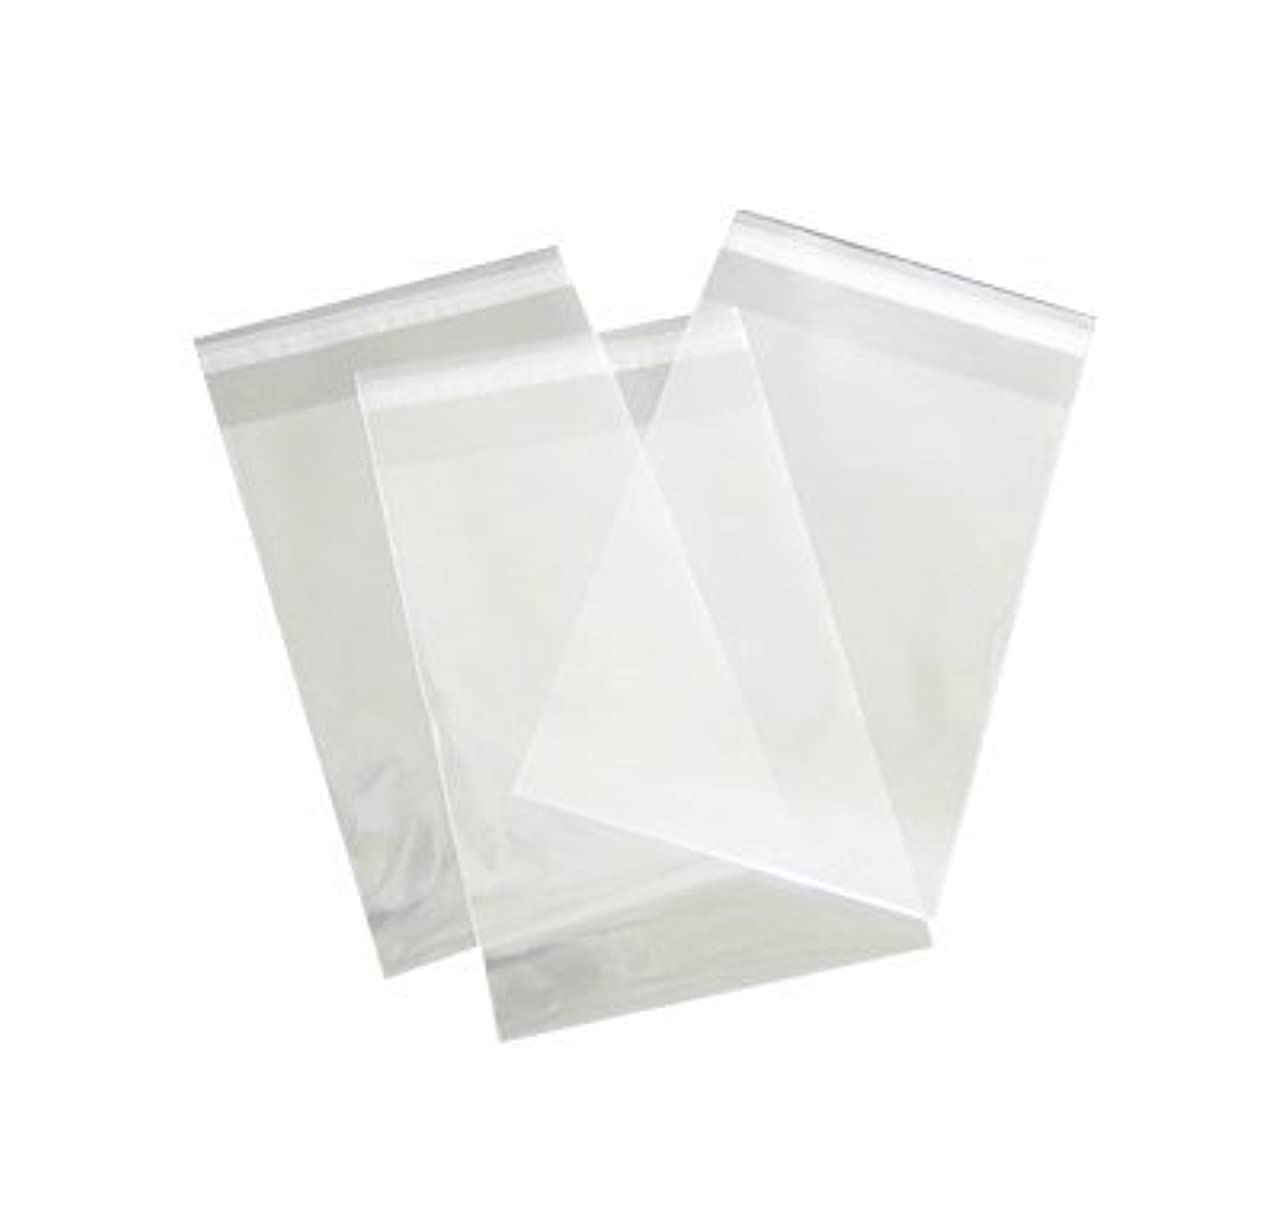 11 x 14 Clear Cello Bags Resealable 100 Pack